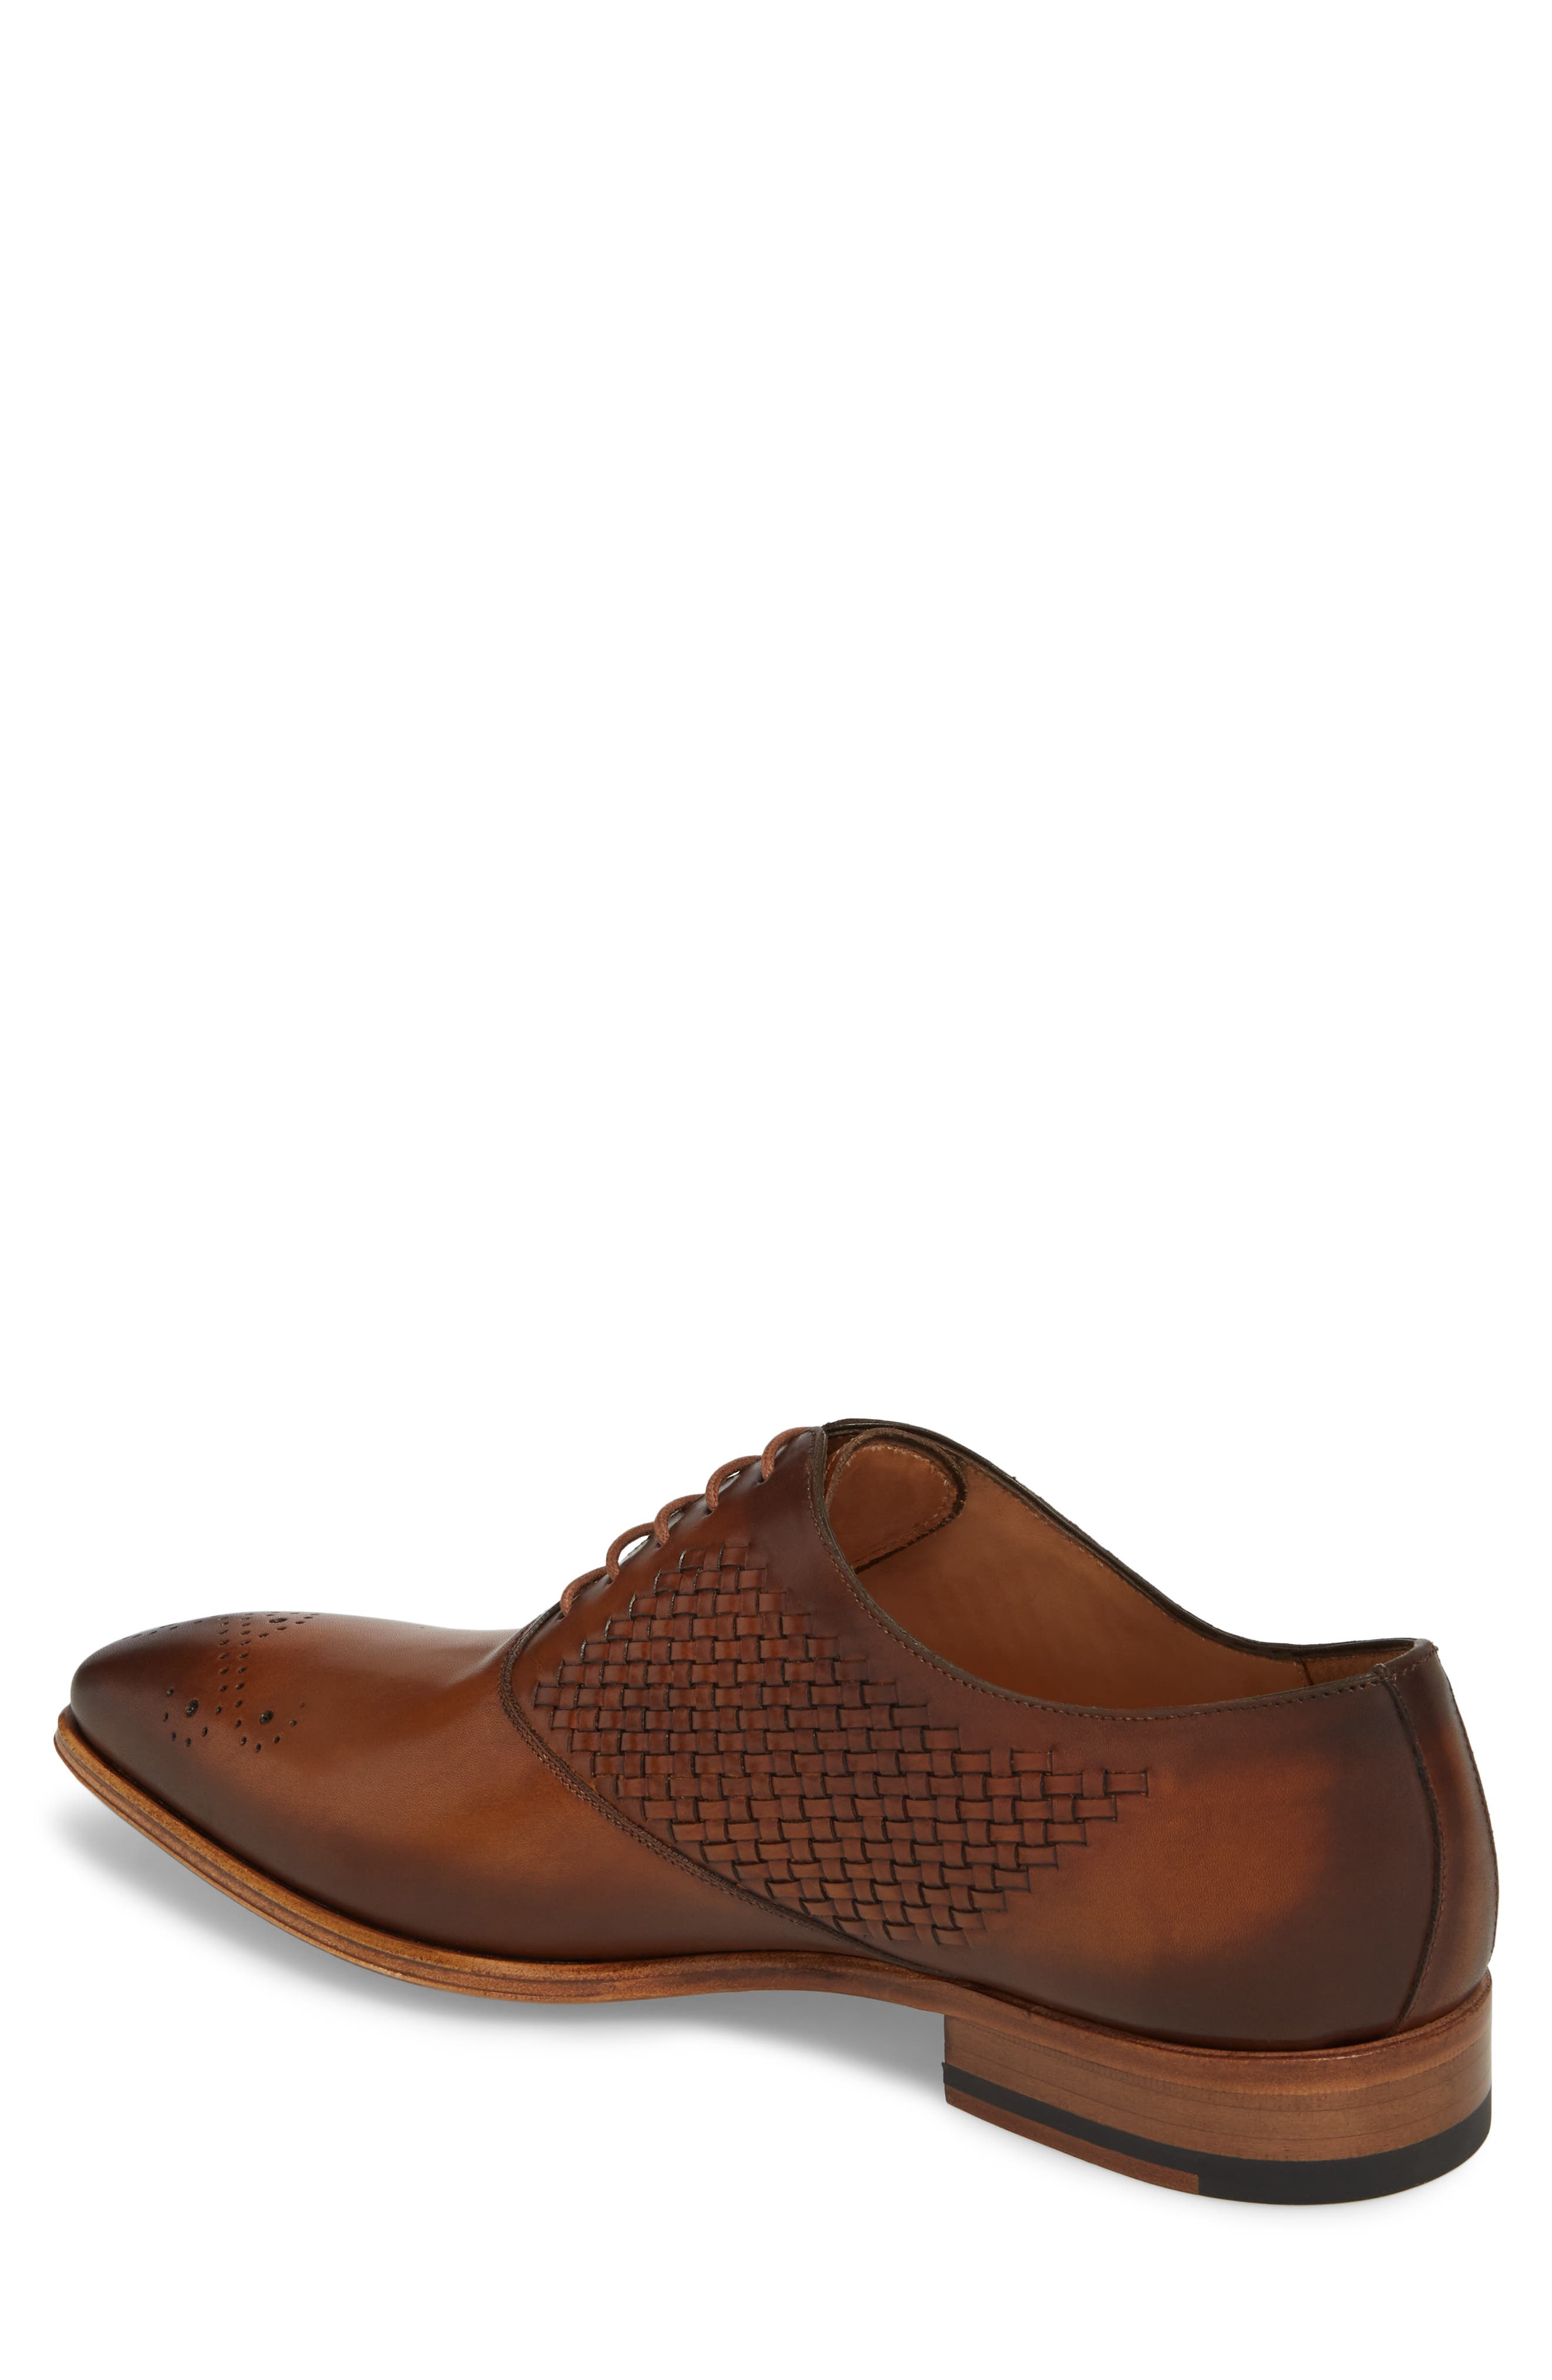 Juventa Woven Oxford,                             Alternate thumbnail 2, color,                             HONEY LEATHER